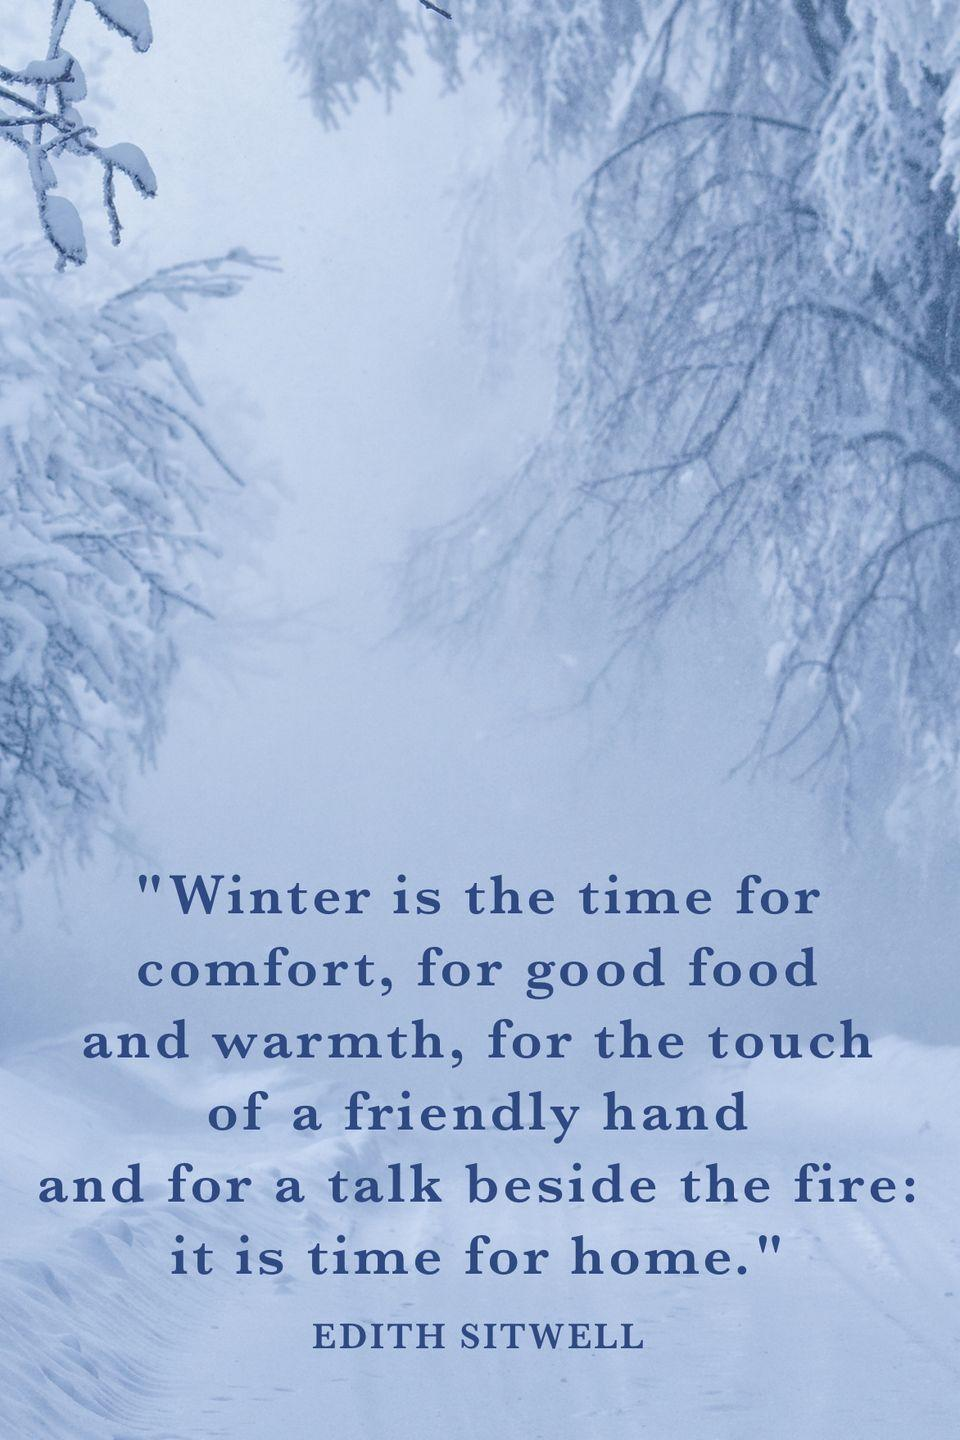 "<p>""Winter is the time for comfort, for good food and warmth, for the touch of a friendly hand and for a talk beside the fire: it is time for home.""</p>"